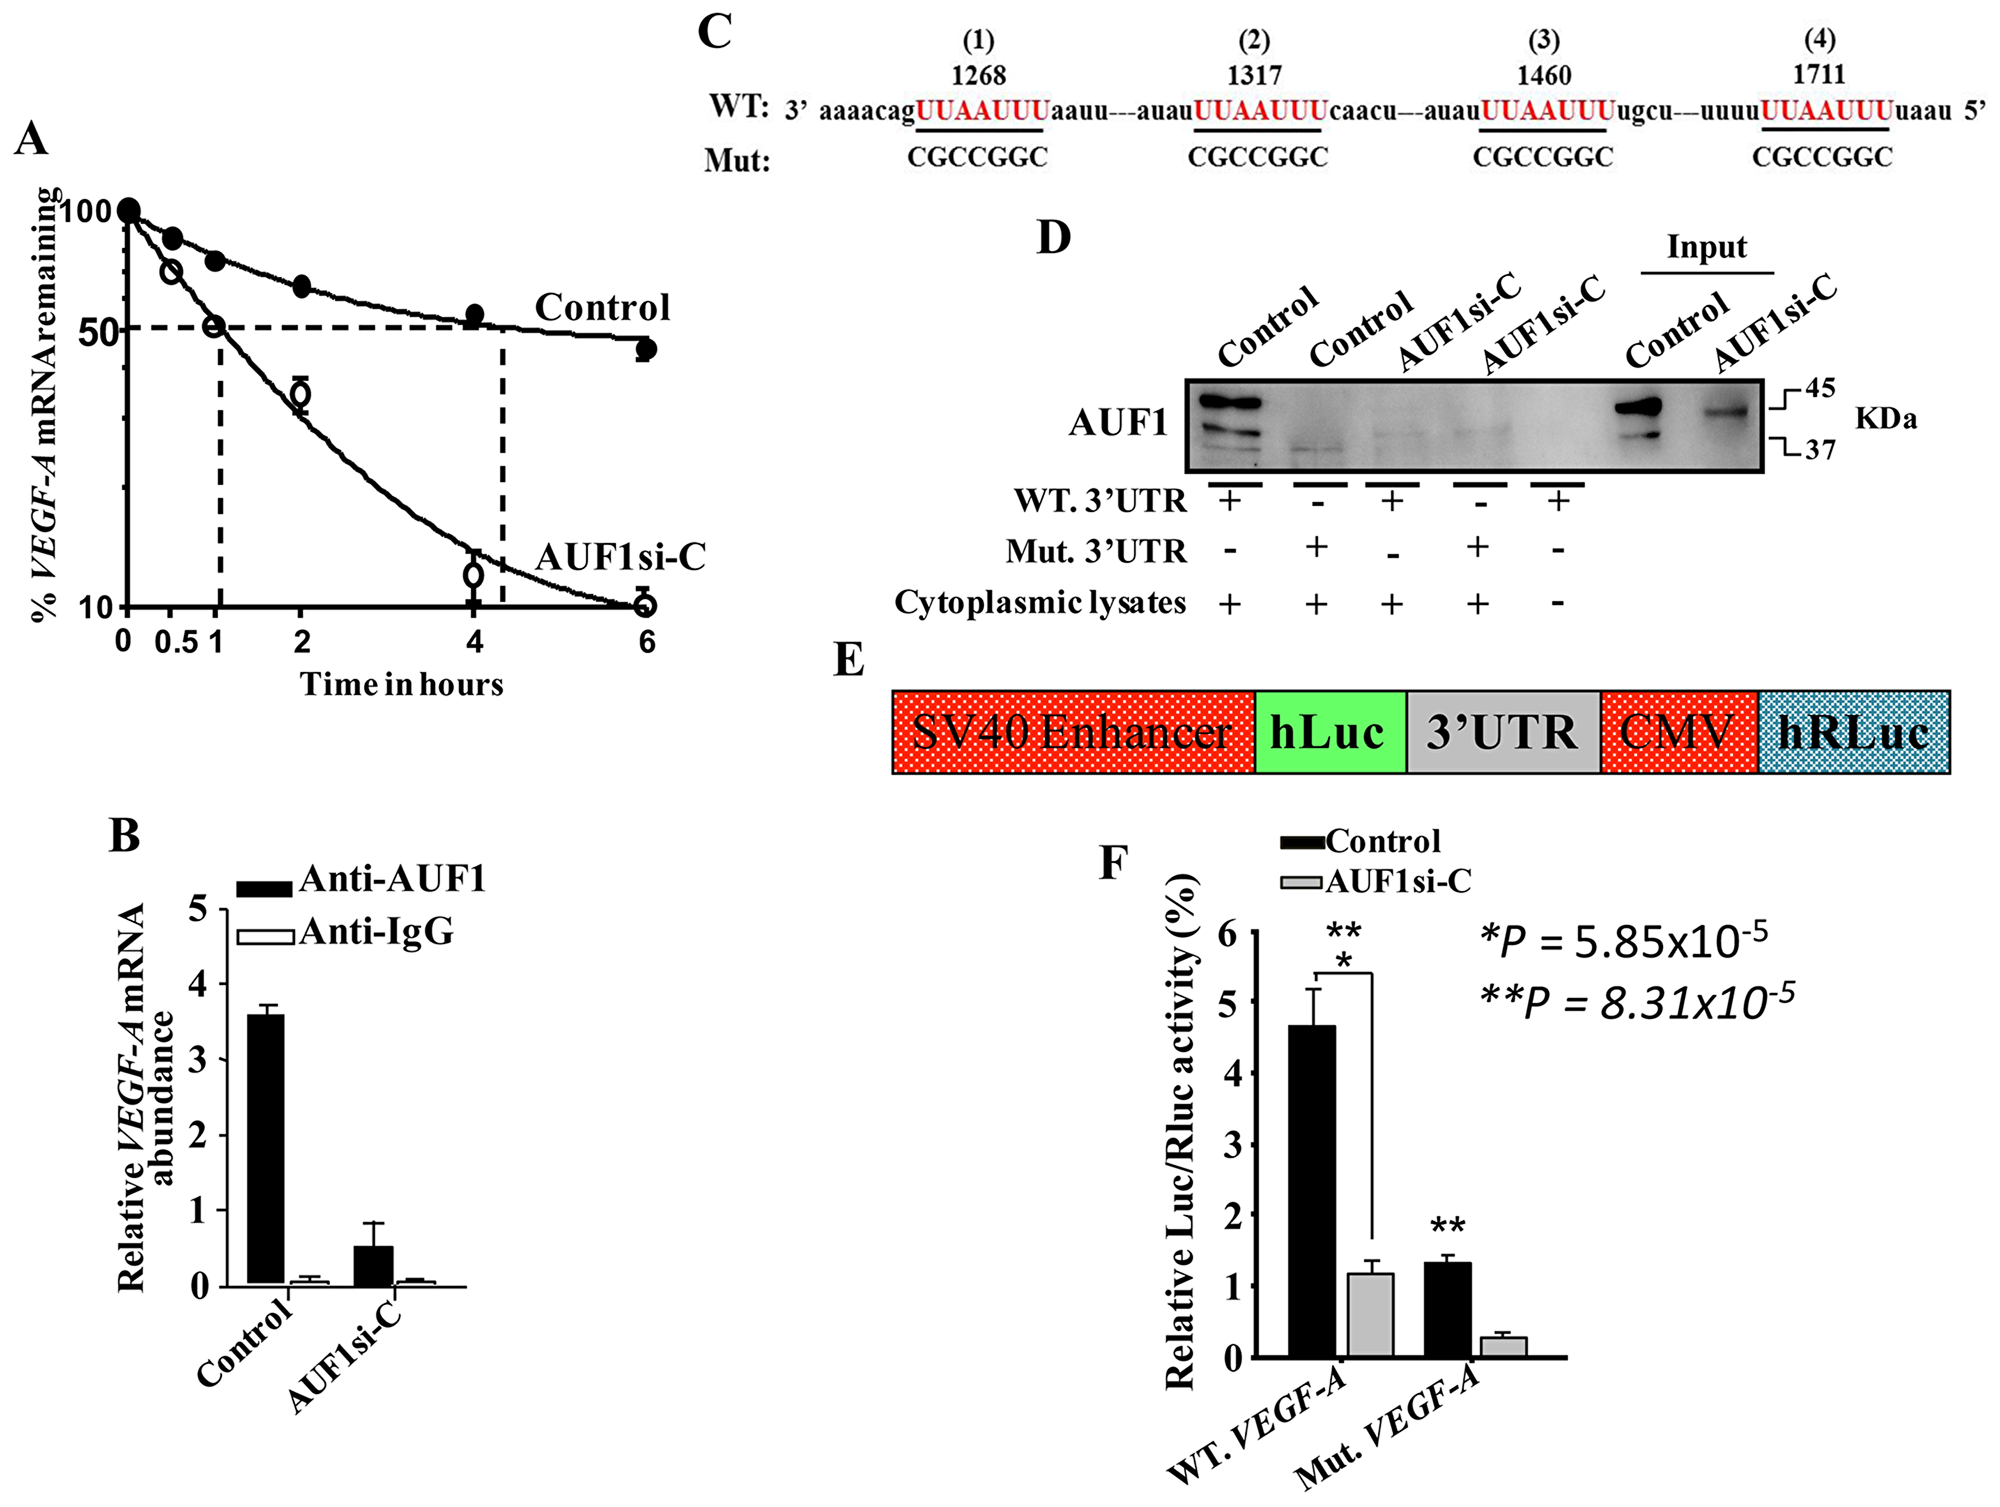 AUF1 binds to and stabilizes the VEGF-A mRNA.